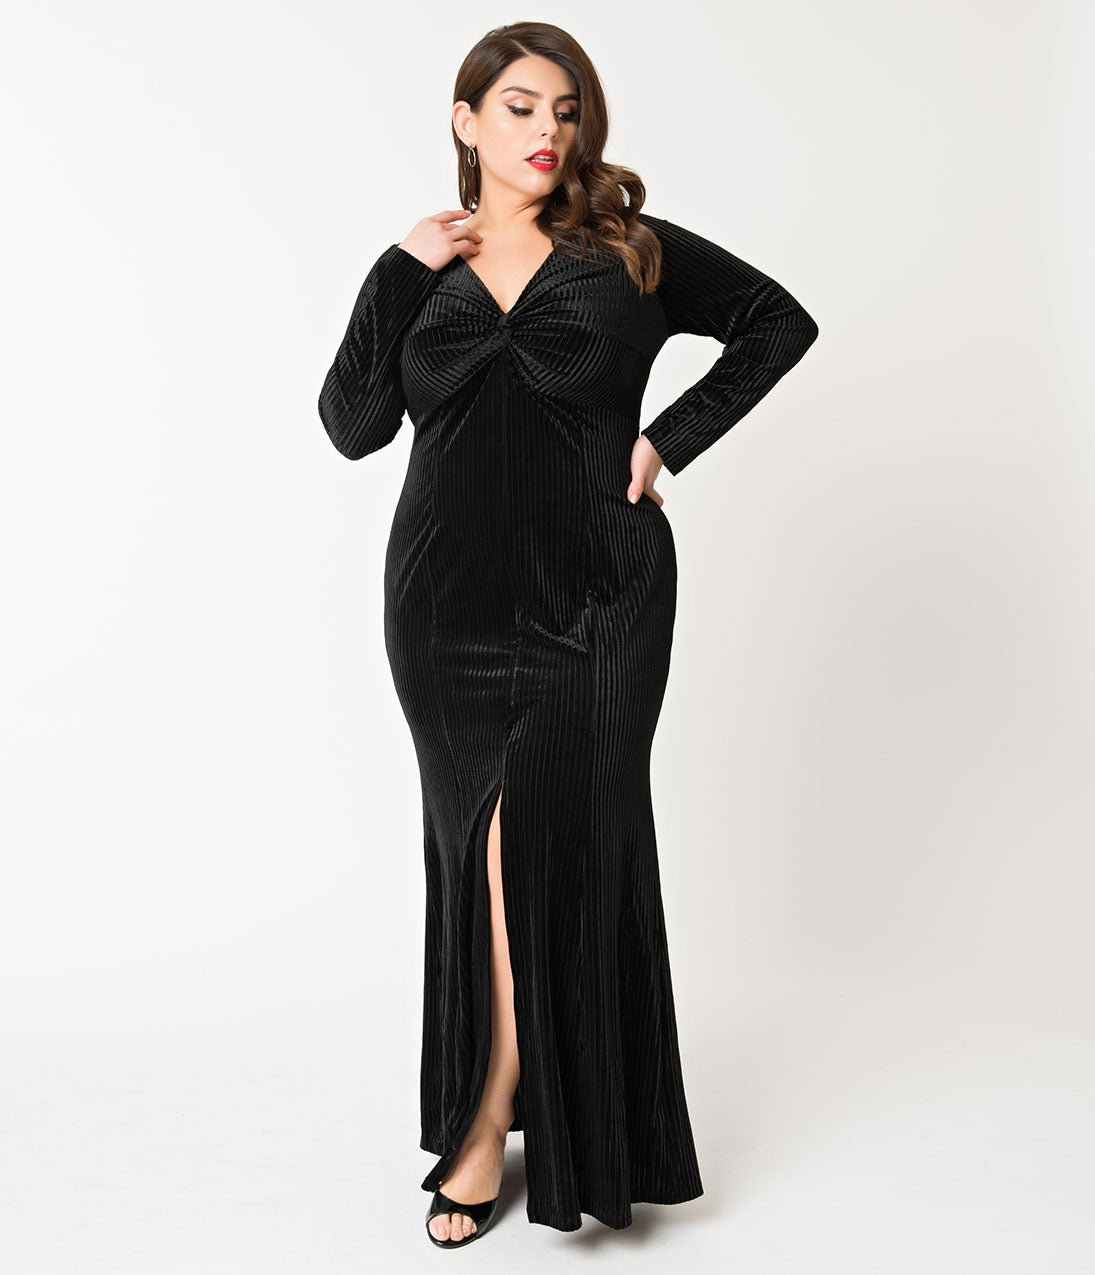 1930s Evening Dresses | Old Hollywood Dress 1930S Style Black Ribbed Velvet Morticia Gown $92.00 AT vintagedancer.com